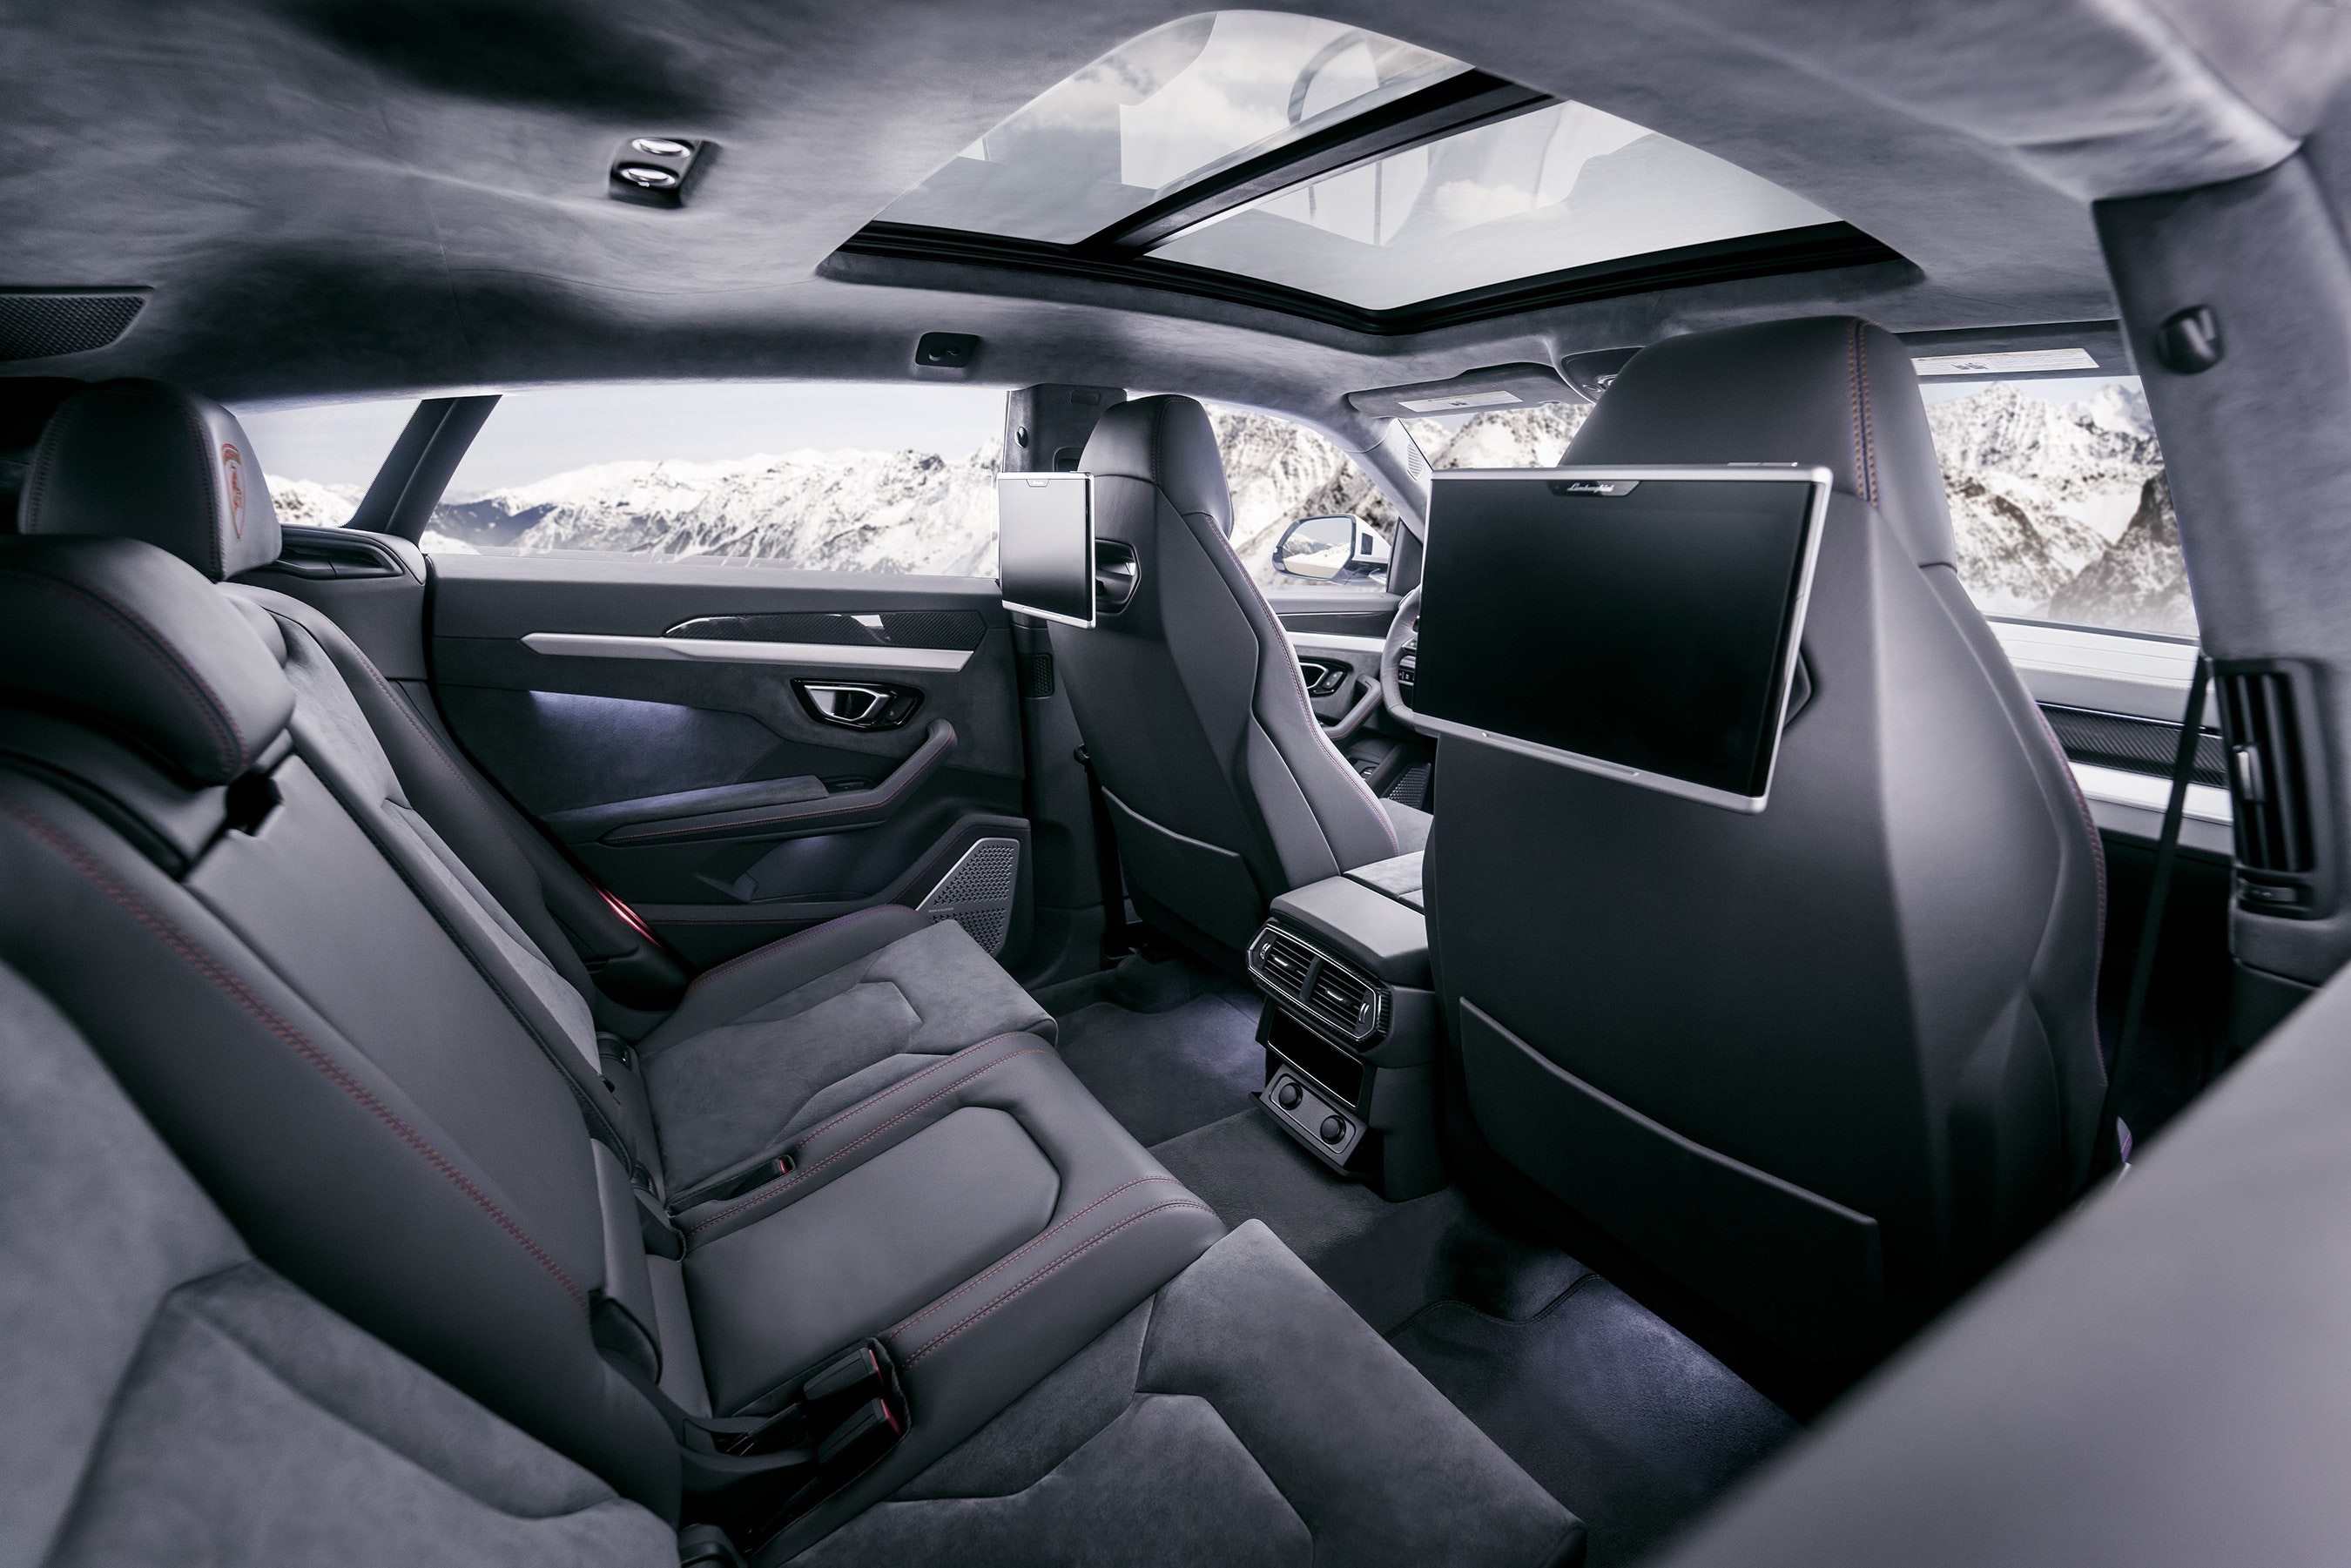 SHIRAKIPHOTO & DESIGN LLC - Urus Interior 2 SPD03181 FINAL LR